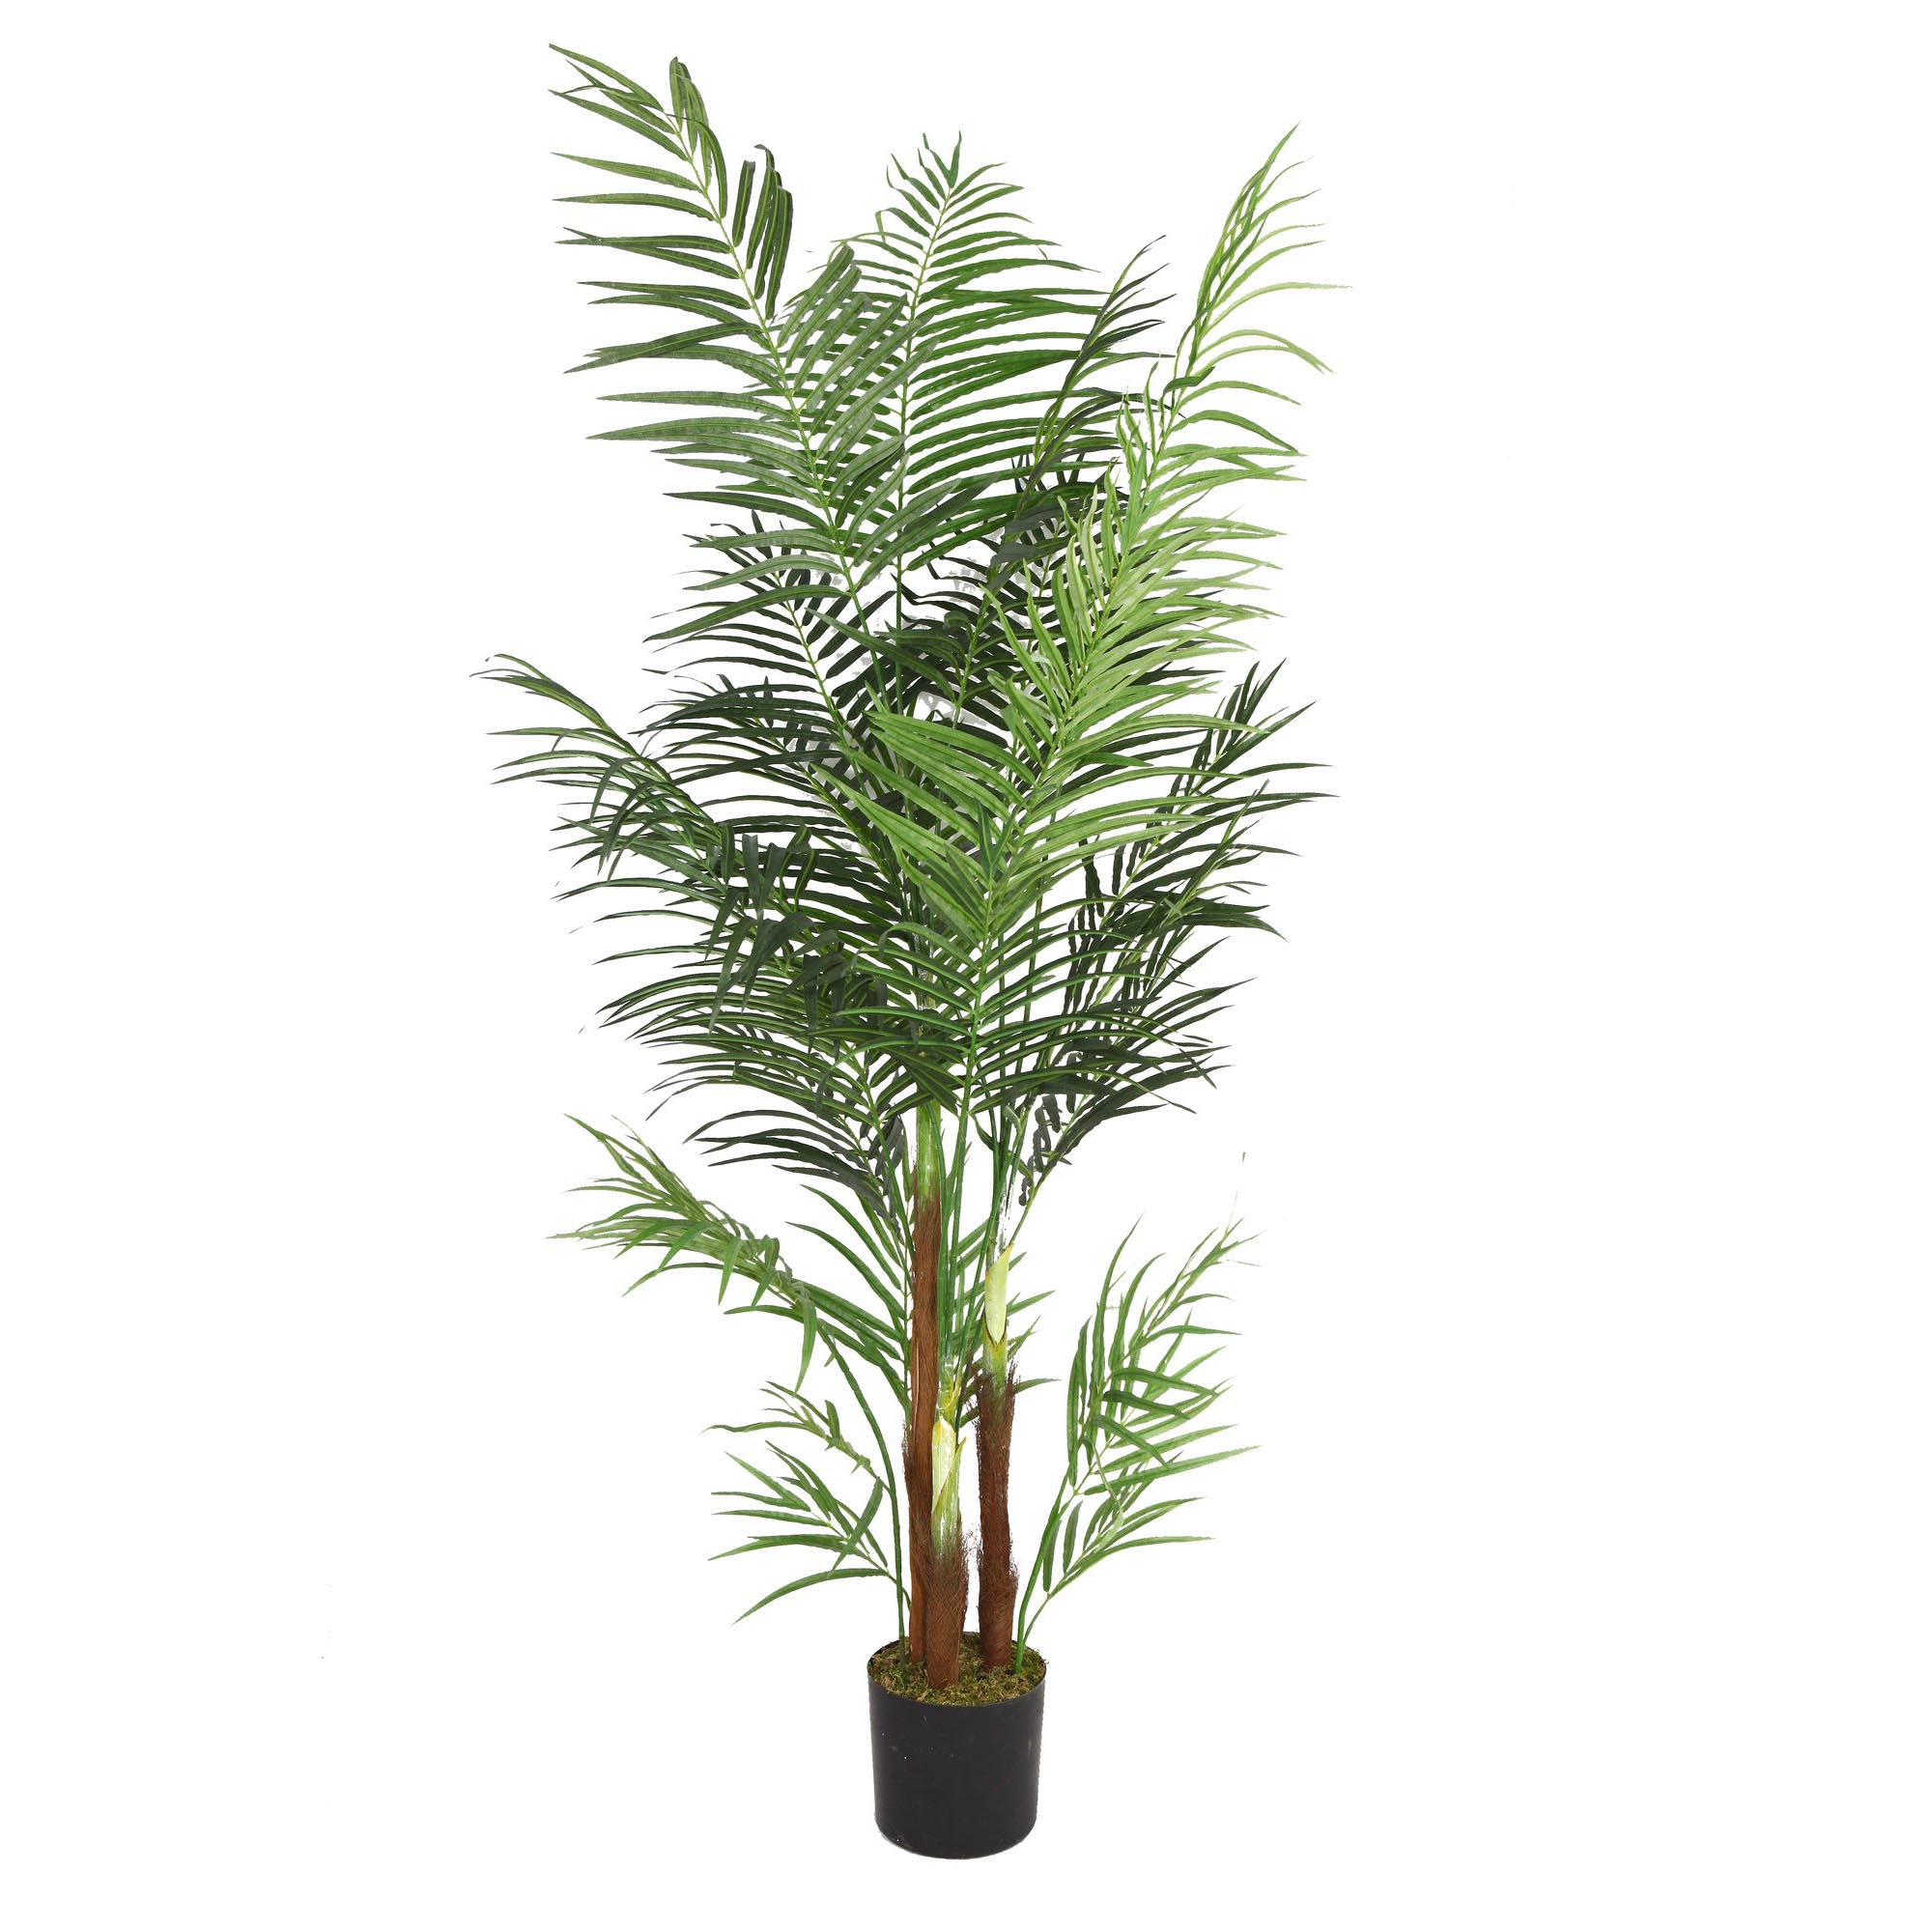 Laura ashley artificial areca palm tree vhx108 for Pictures of areca palm plants